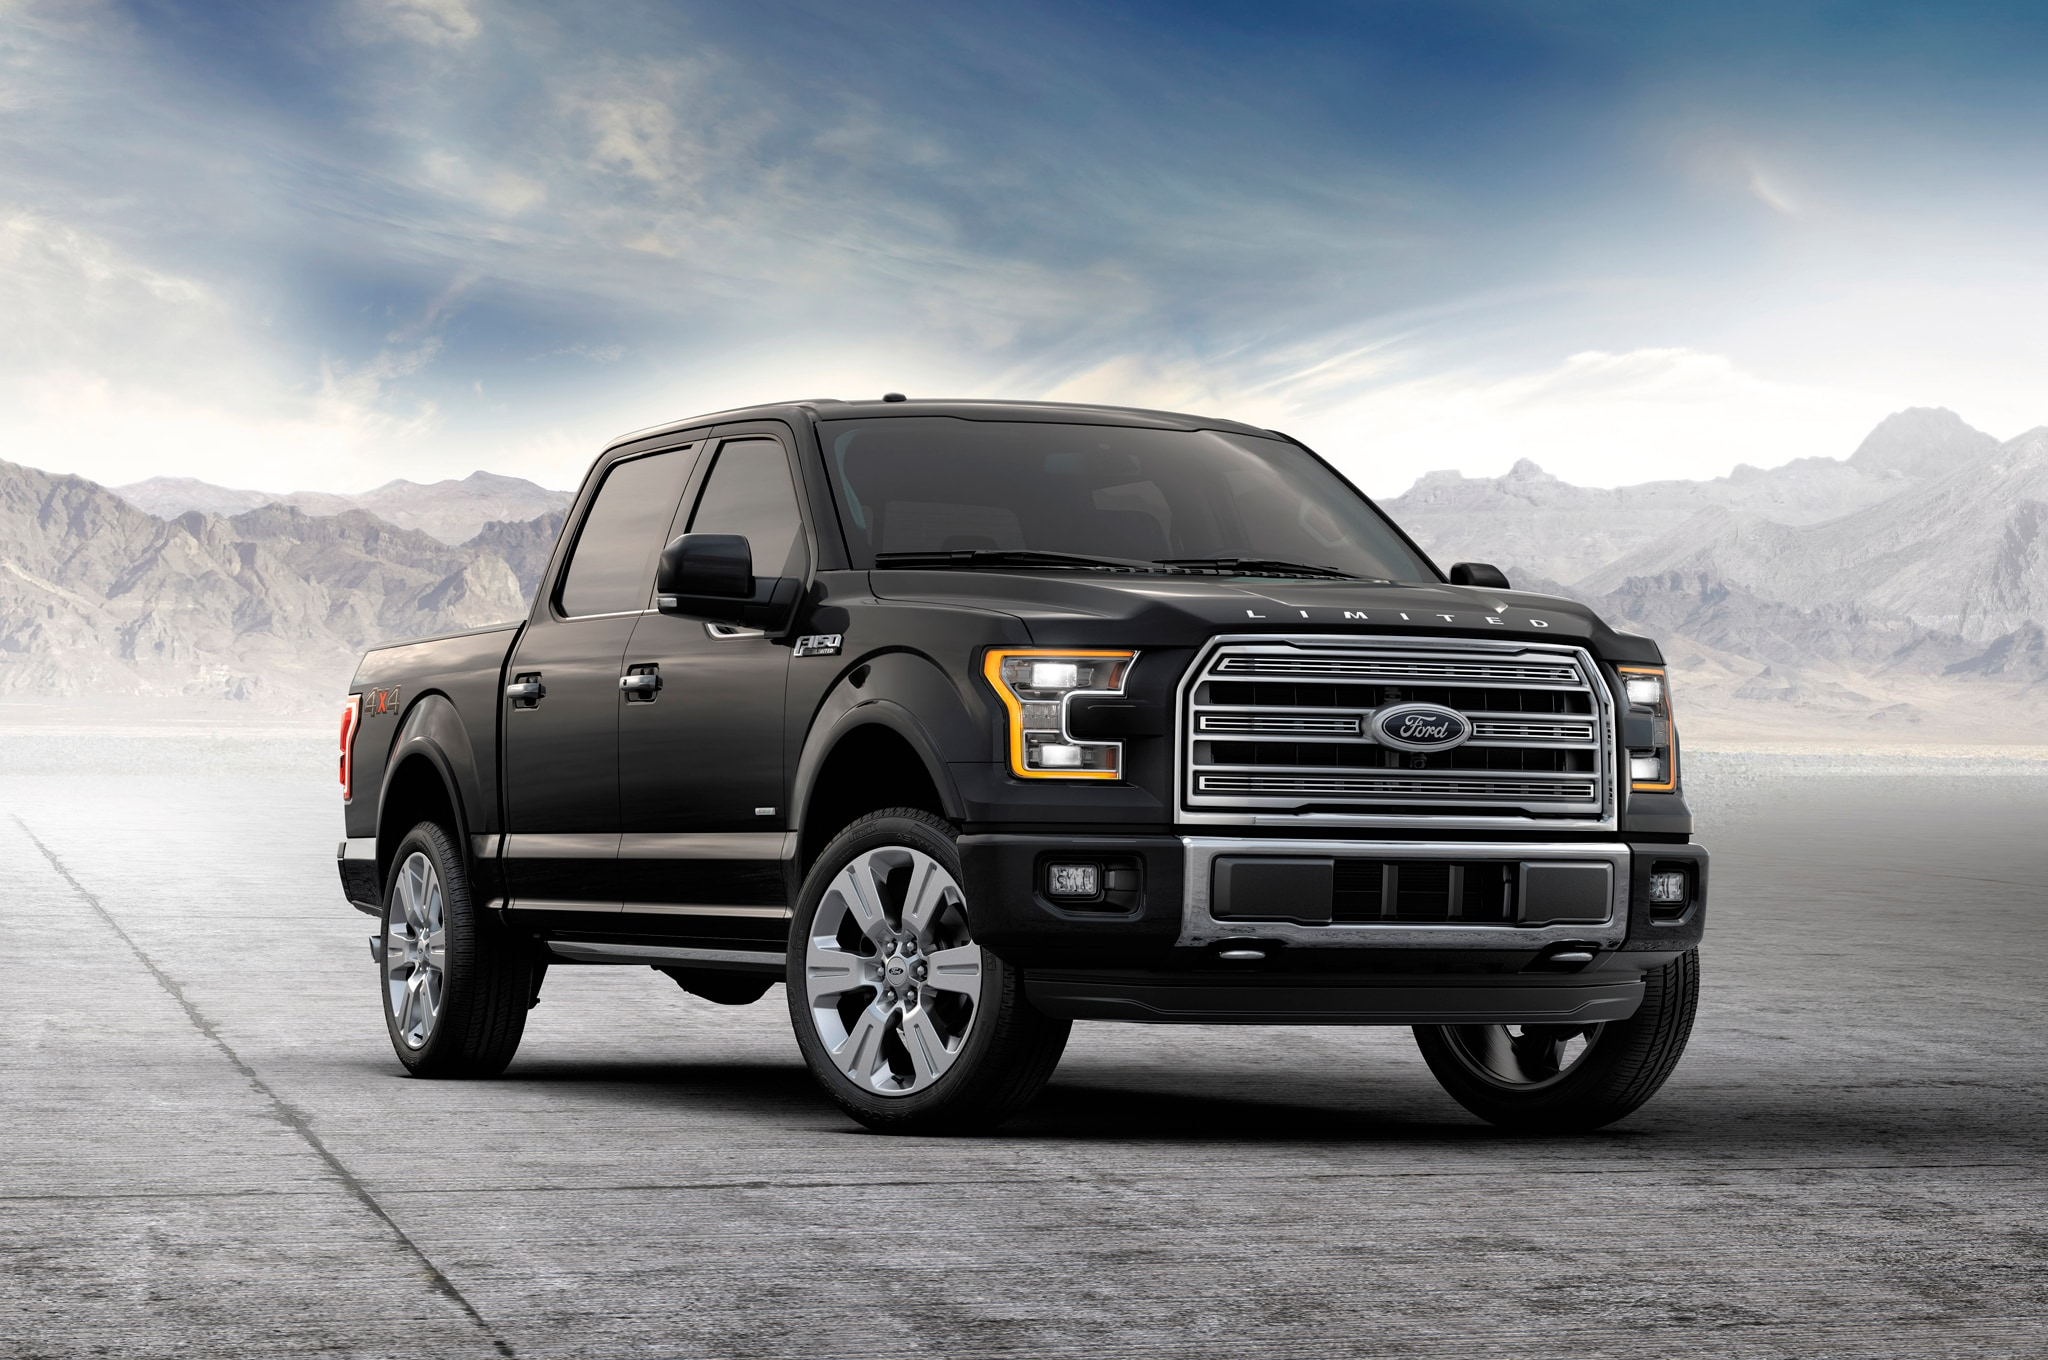 the New 2016 Ford F150 For Sale in Colorado Springs at Phil Long